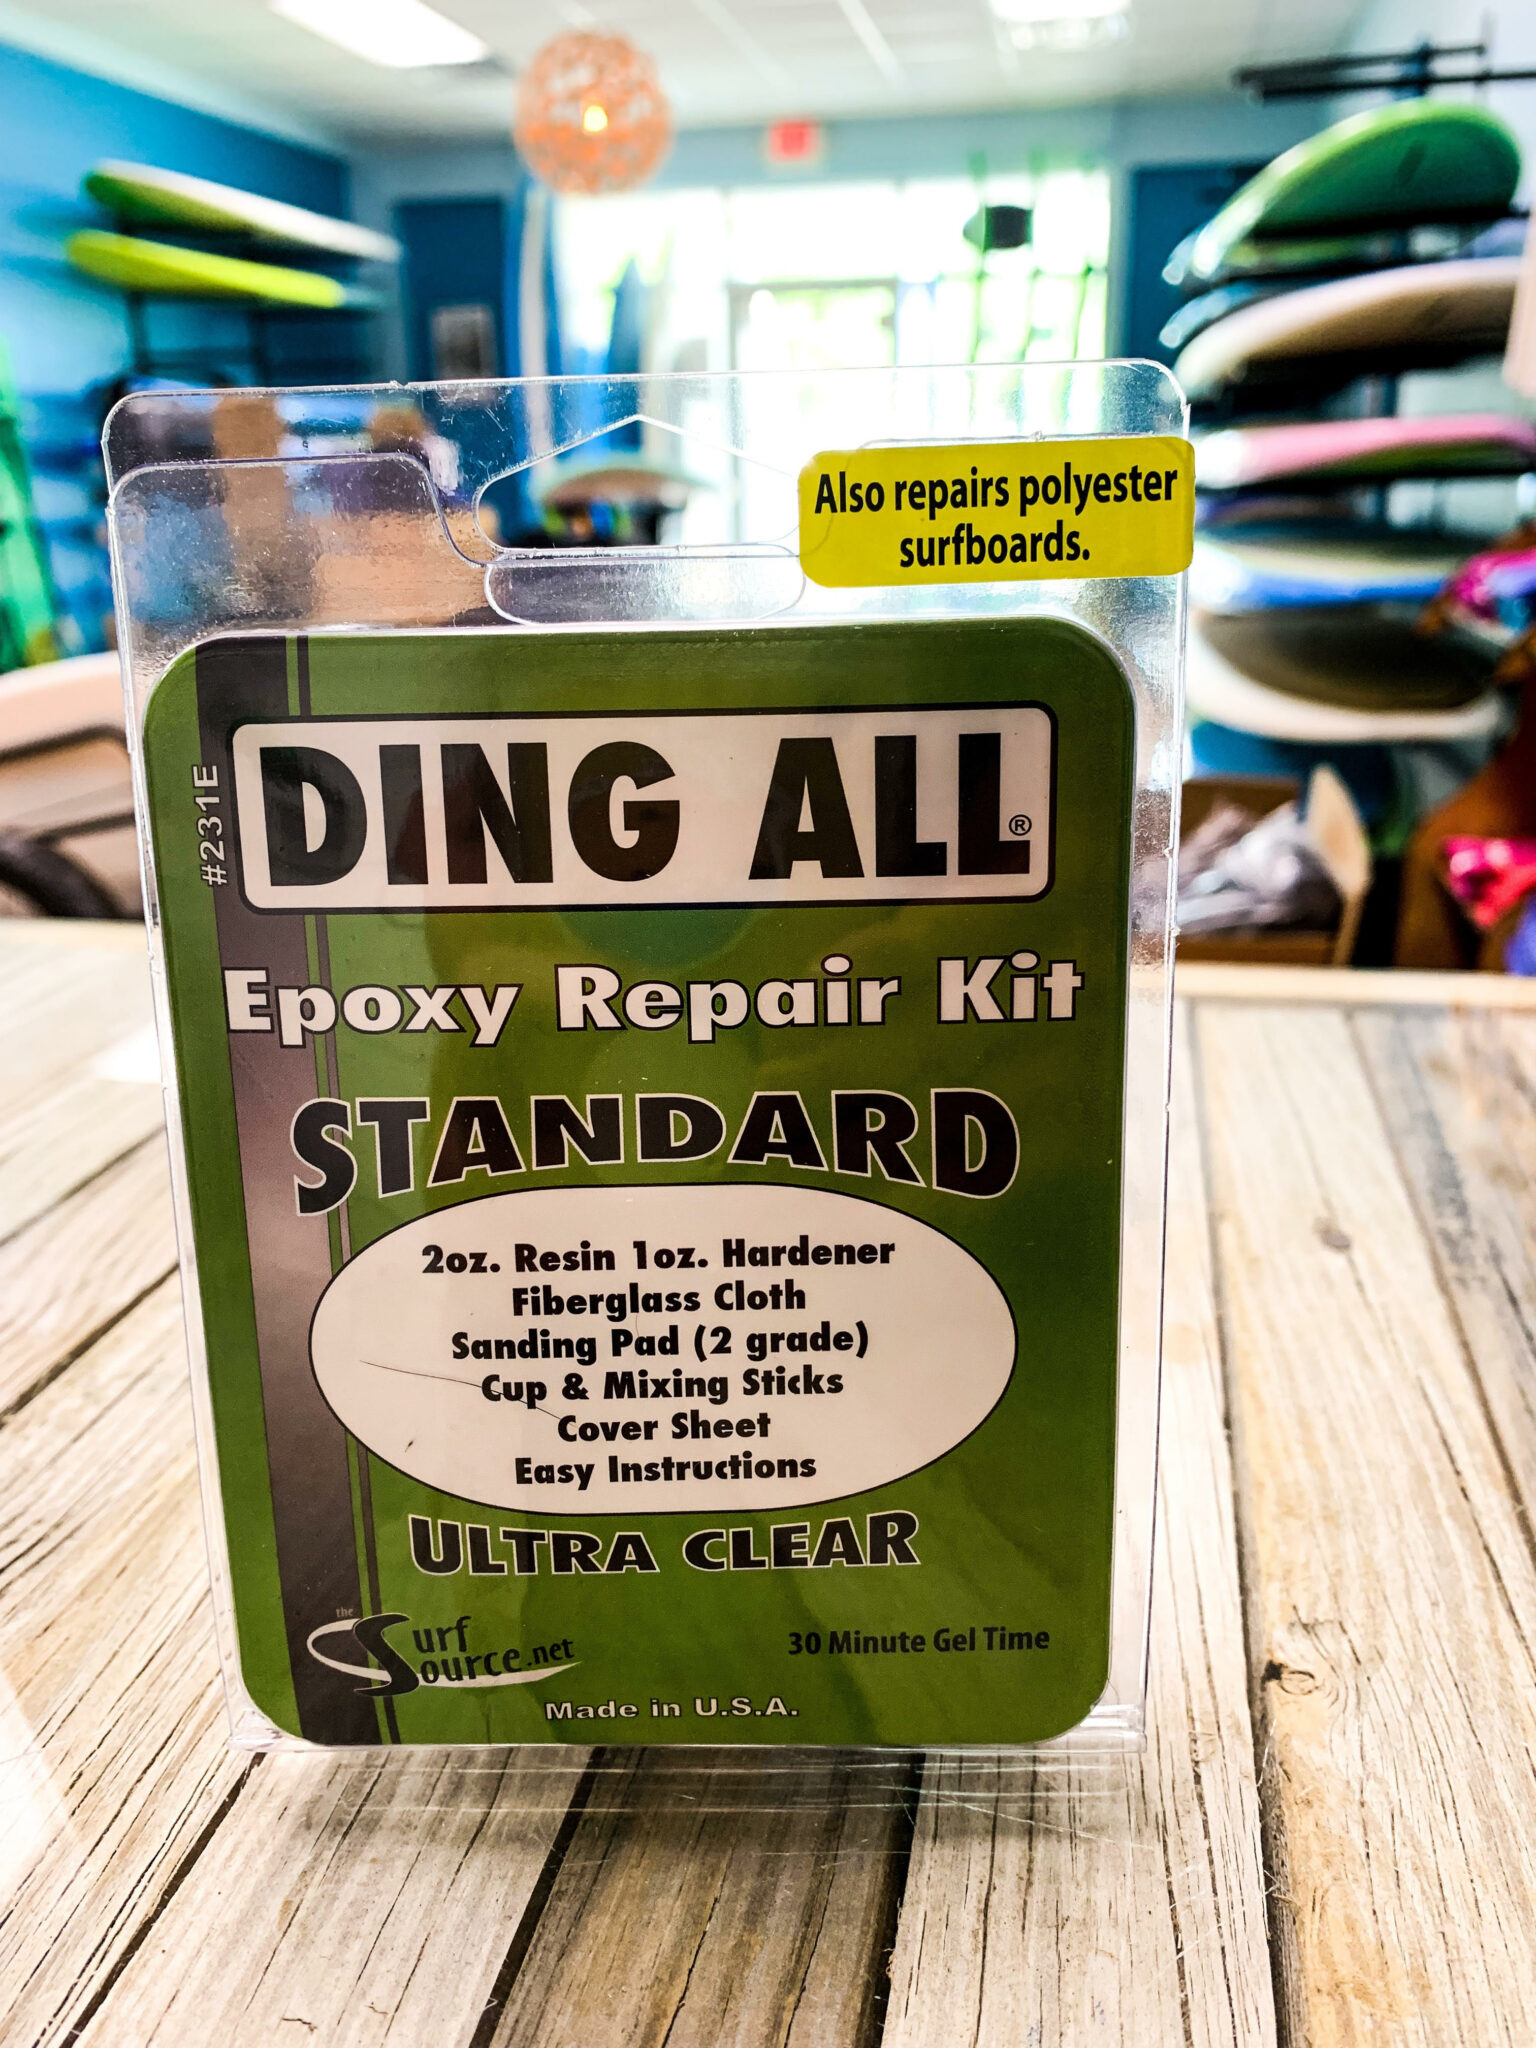 Ding All Epoxy Repair Kit - Standard Ultra Clear